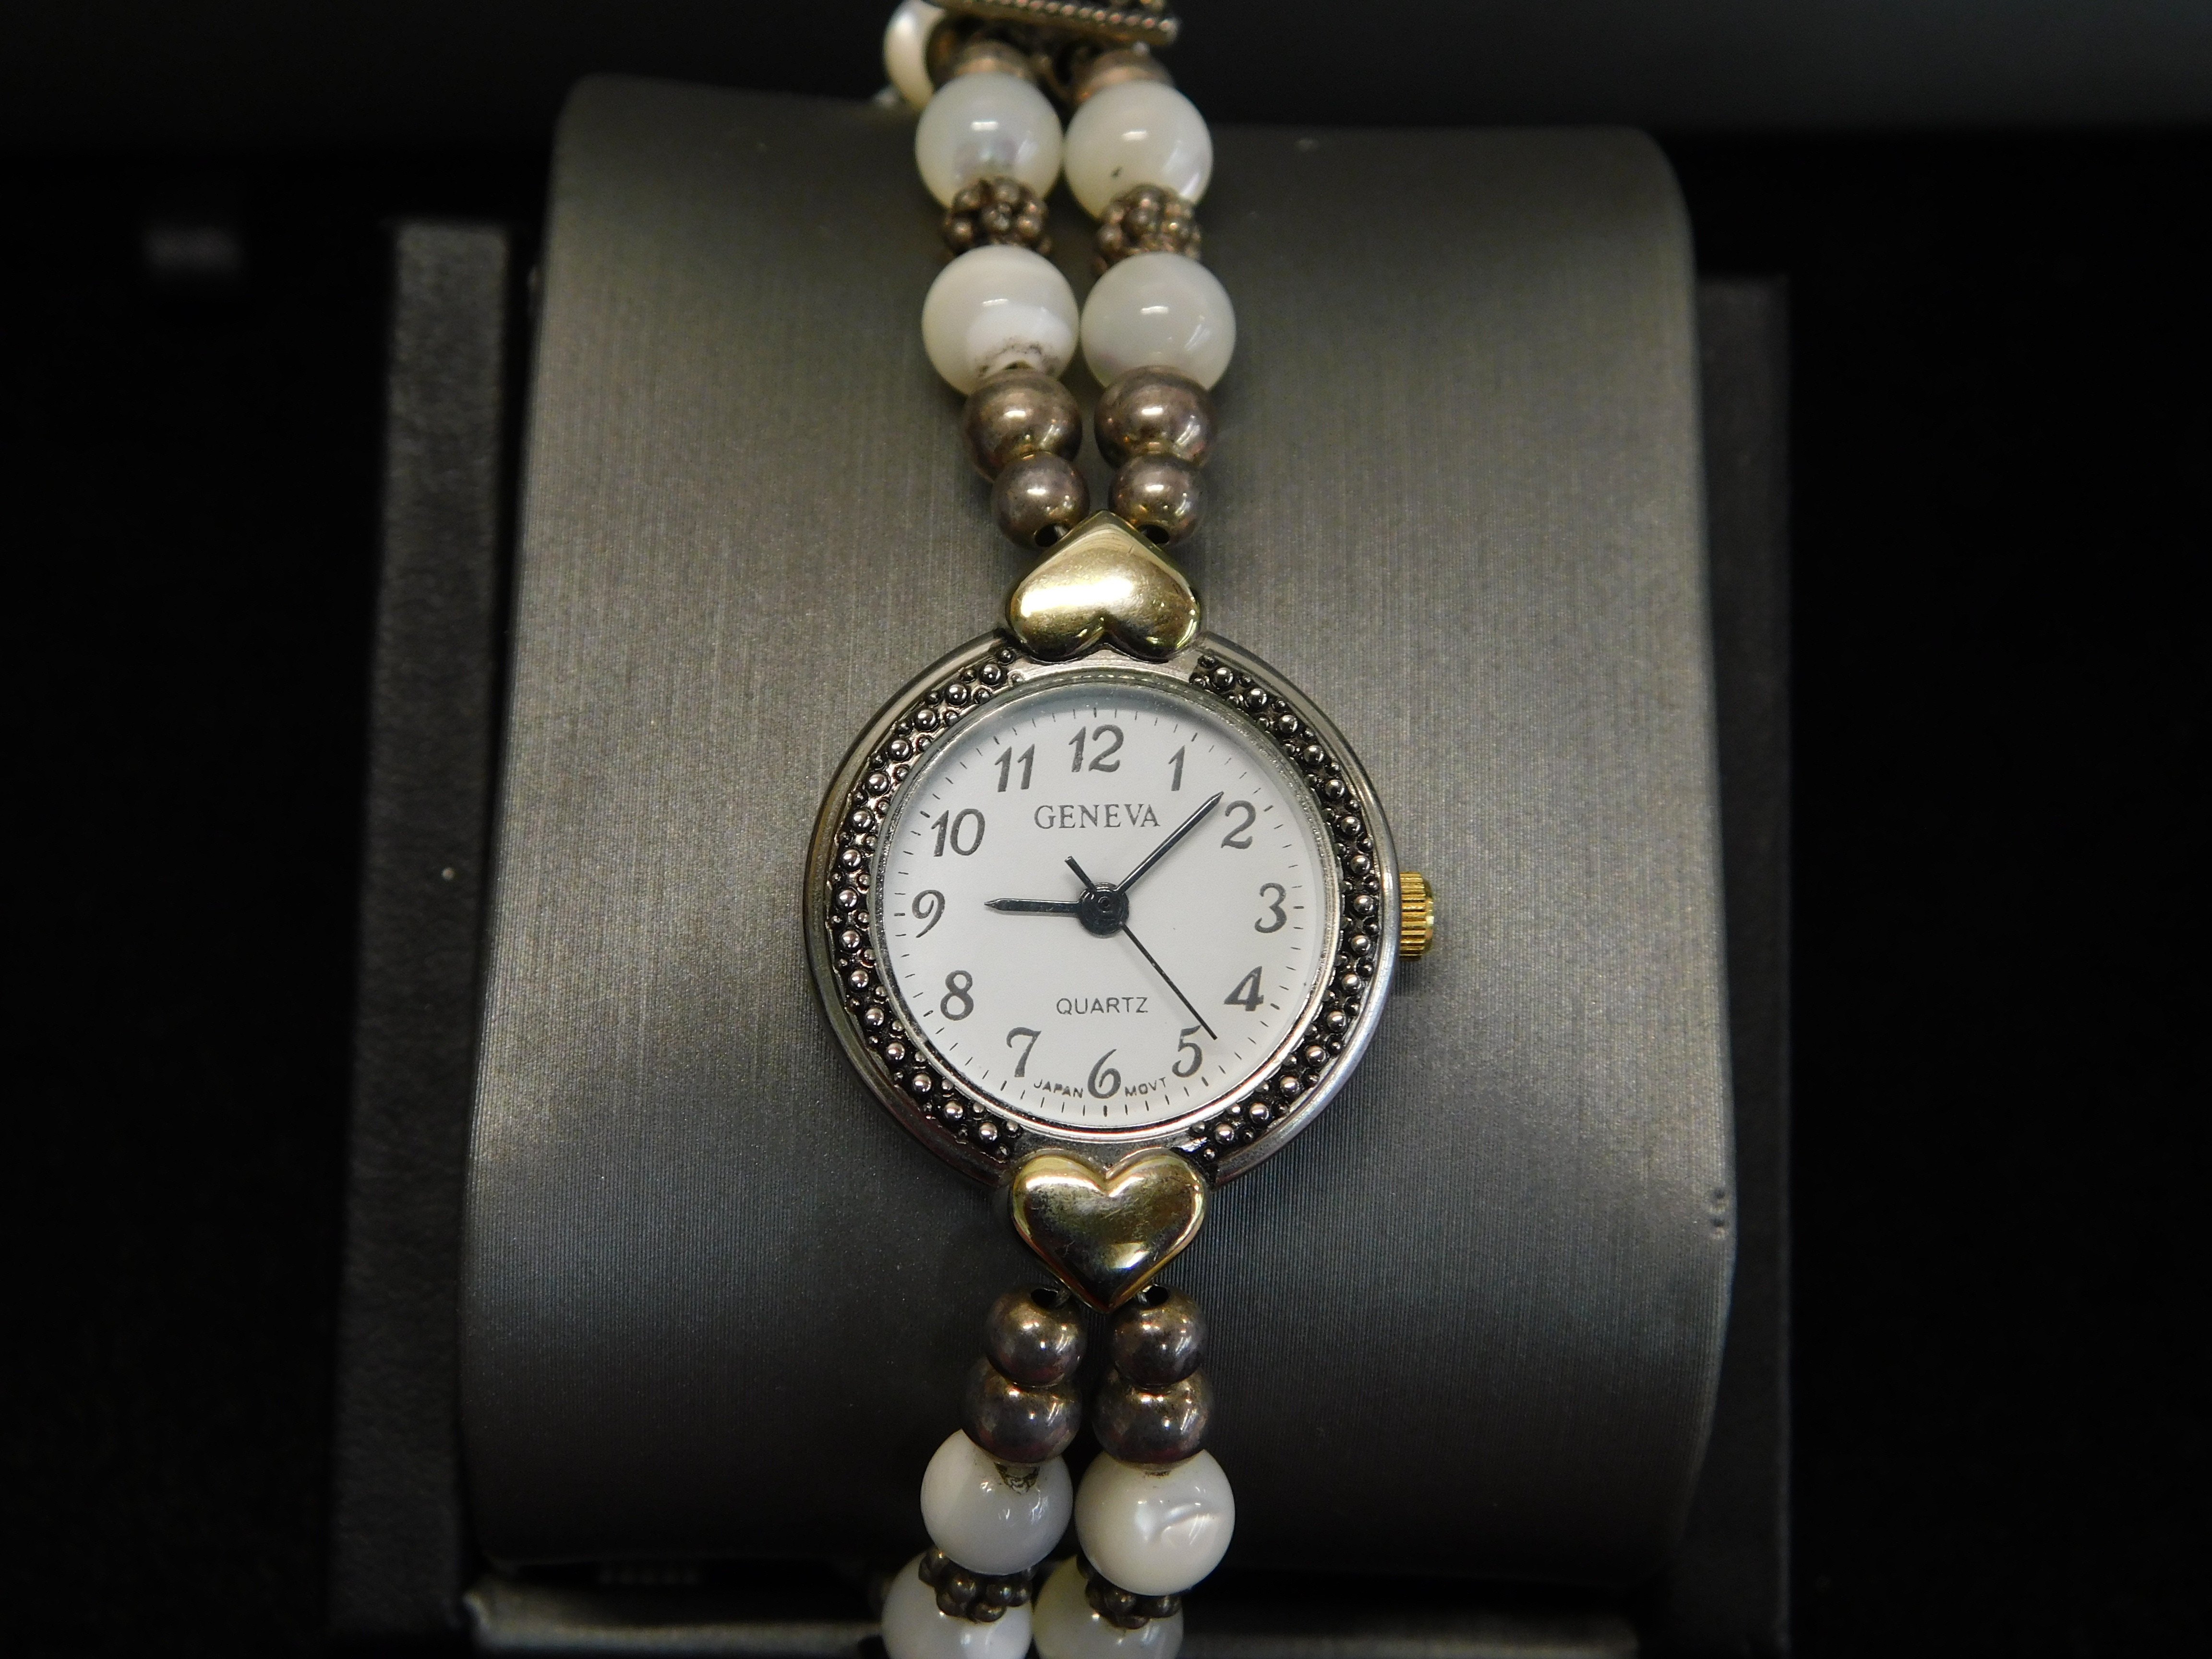 GENEVE WATCH WITH BEADED BAND